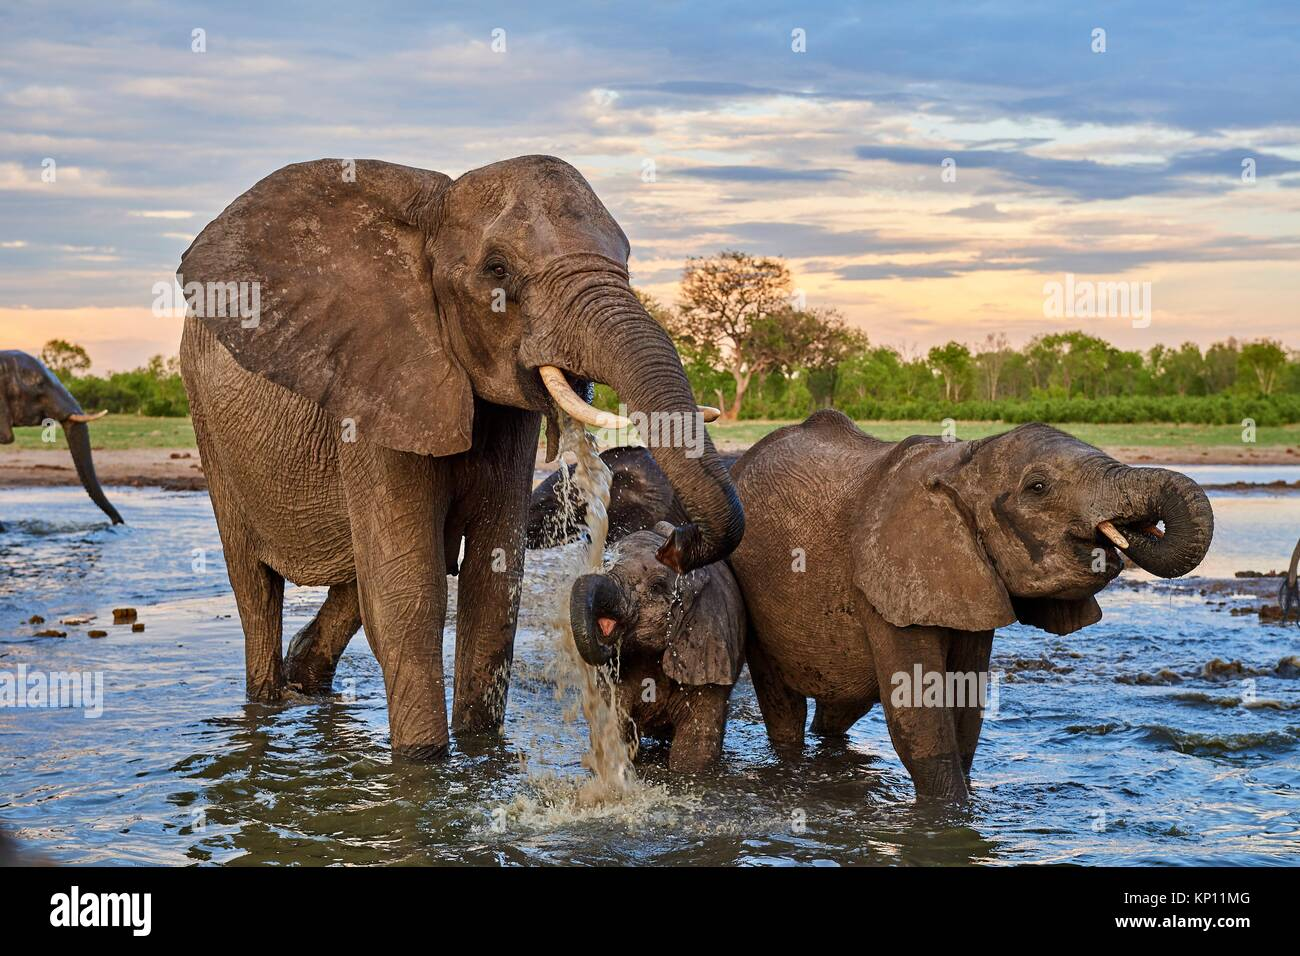 African elephant group (Loxodonta africana) drinking at a watehole. Mother and calf, Hwange National Park, Zimbabwe. - Stock Image